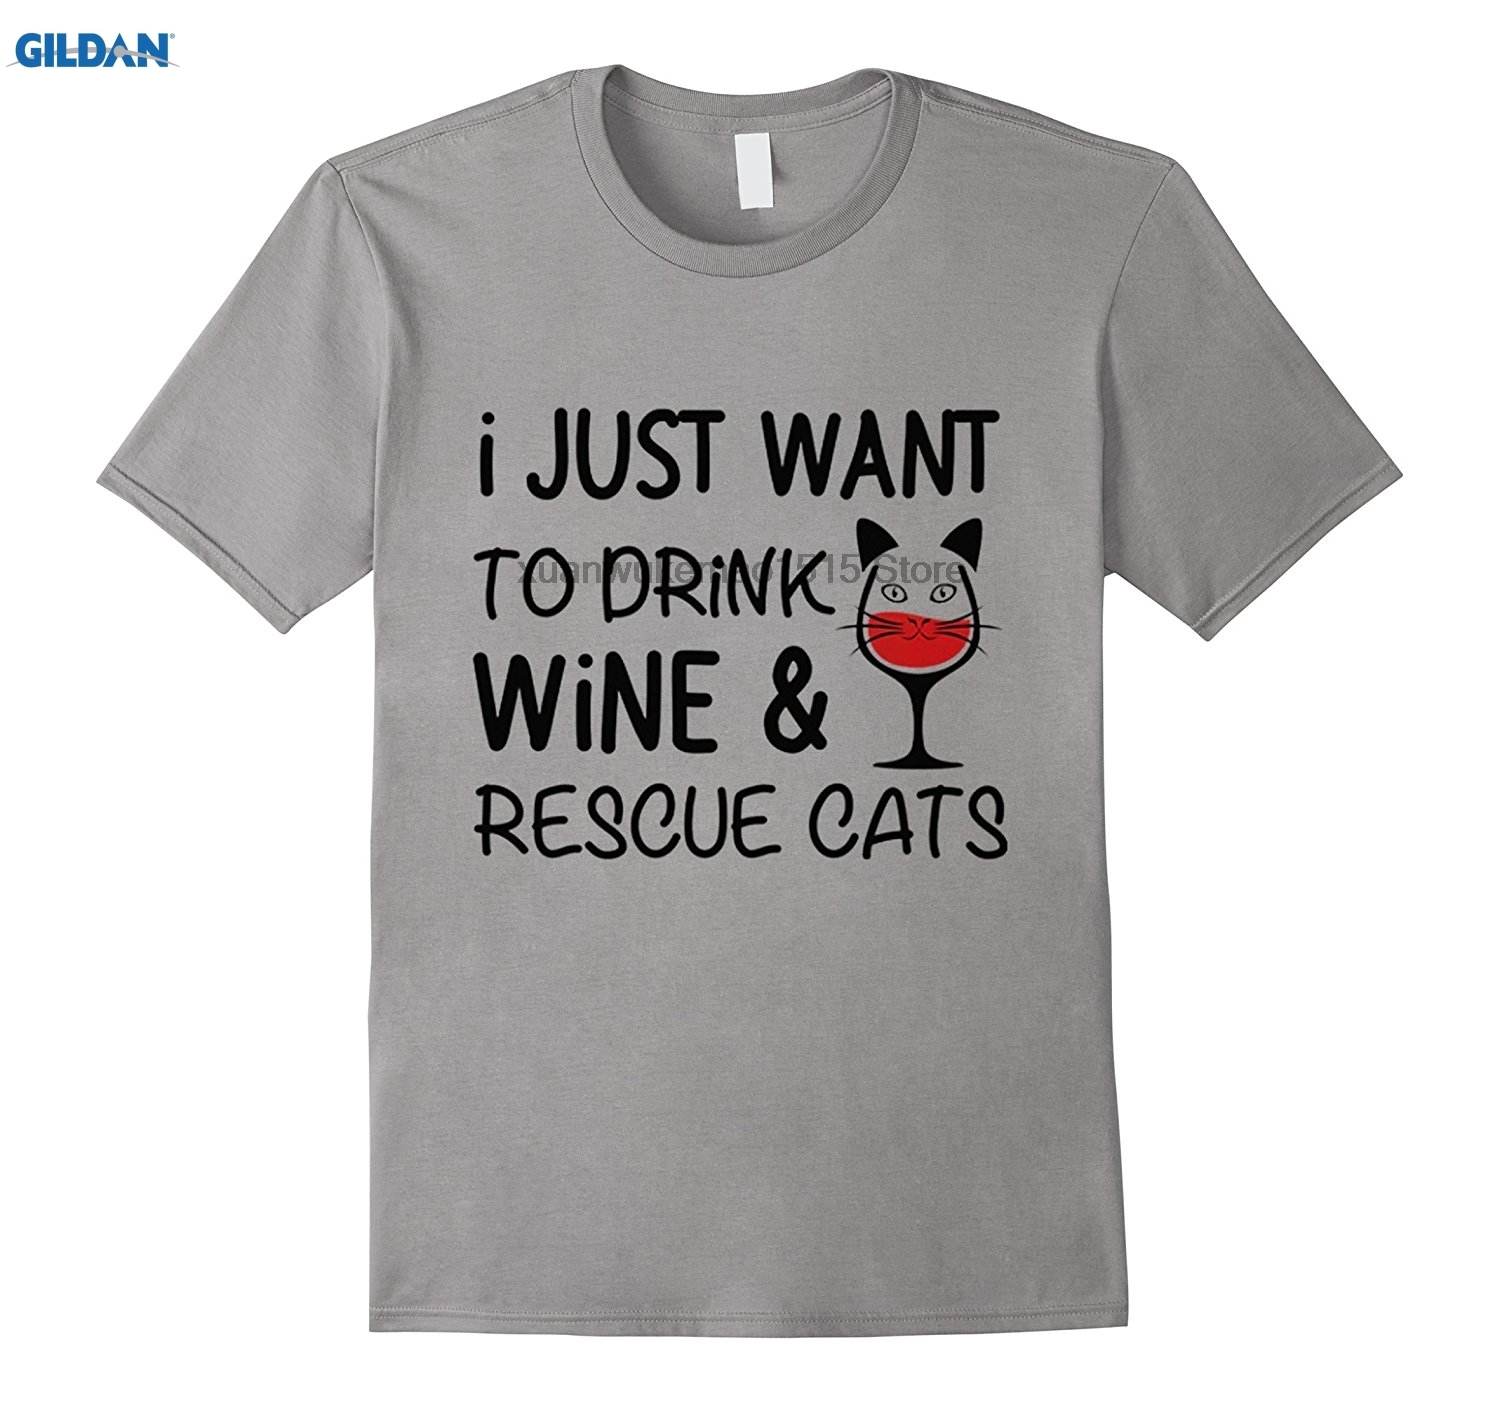 GILDAN 100% Cotton O-neck printed T-shirt Drink Wine Rescue Cats ...